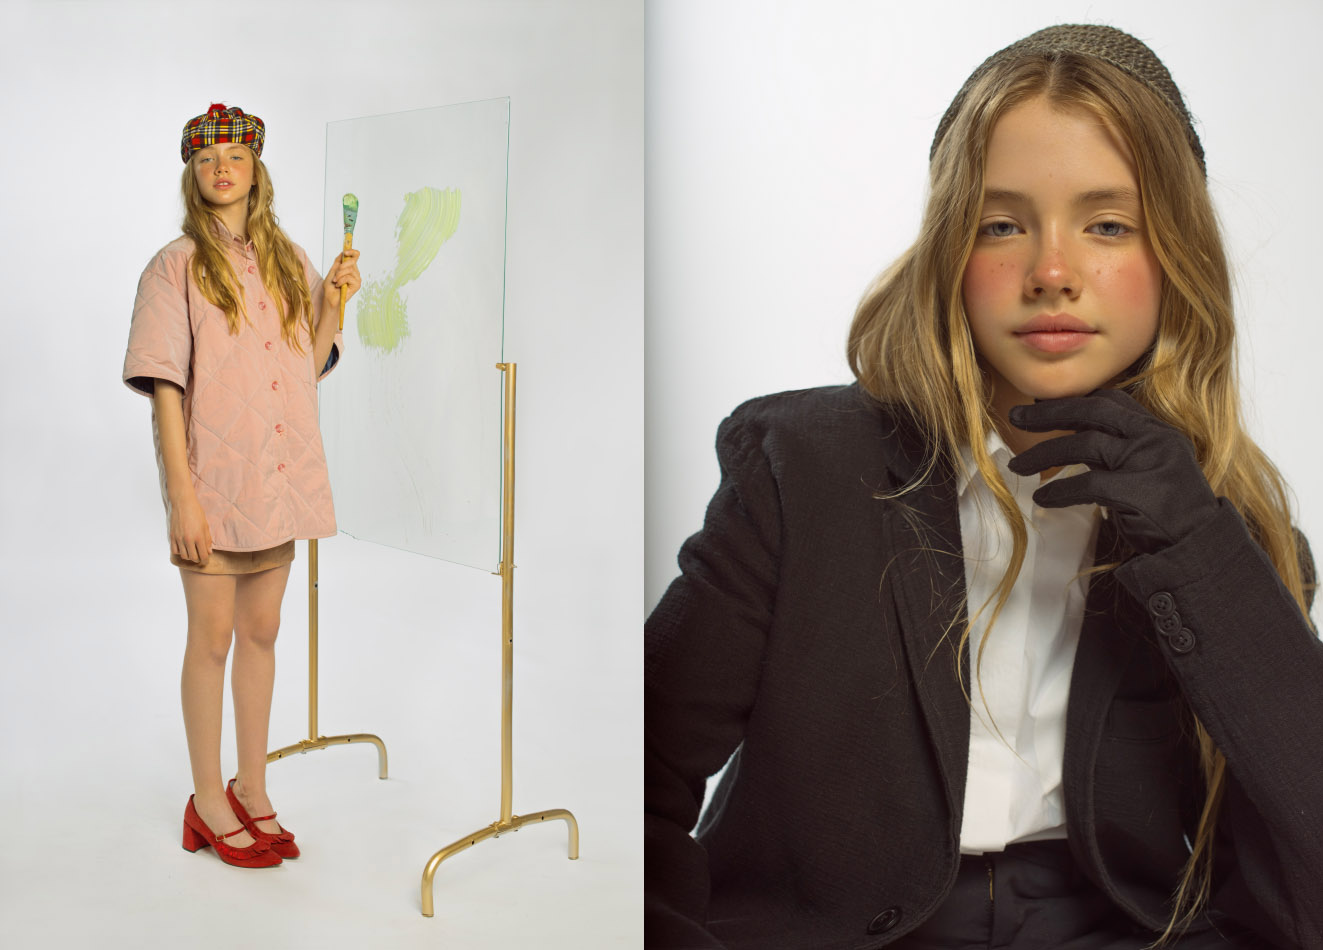 jacket  MANEMANE  shoes  KLING  skirt and hat  STYLIST ' S OWN . jacket  LOREAK  shorts  PULL AND BEAR  gloves and shirt  STYLIST ' S OWN